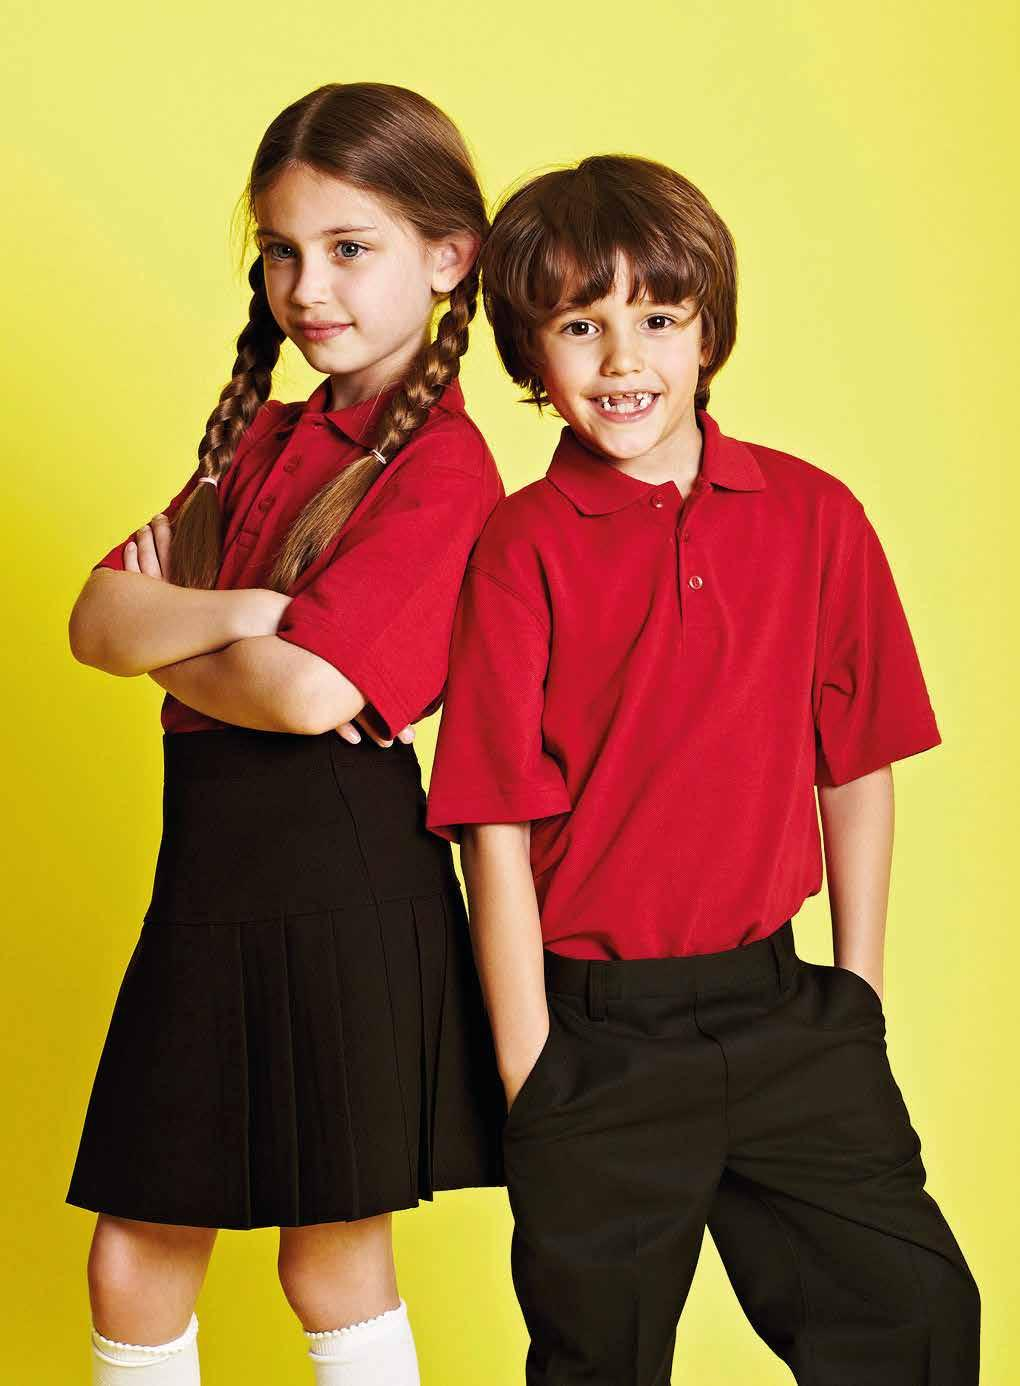 POLYVISCOSE ABOVE KNEE LENGTH AND TIE POLYESTER BOYS: POLO TSHIRT, SHORT